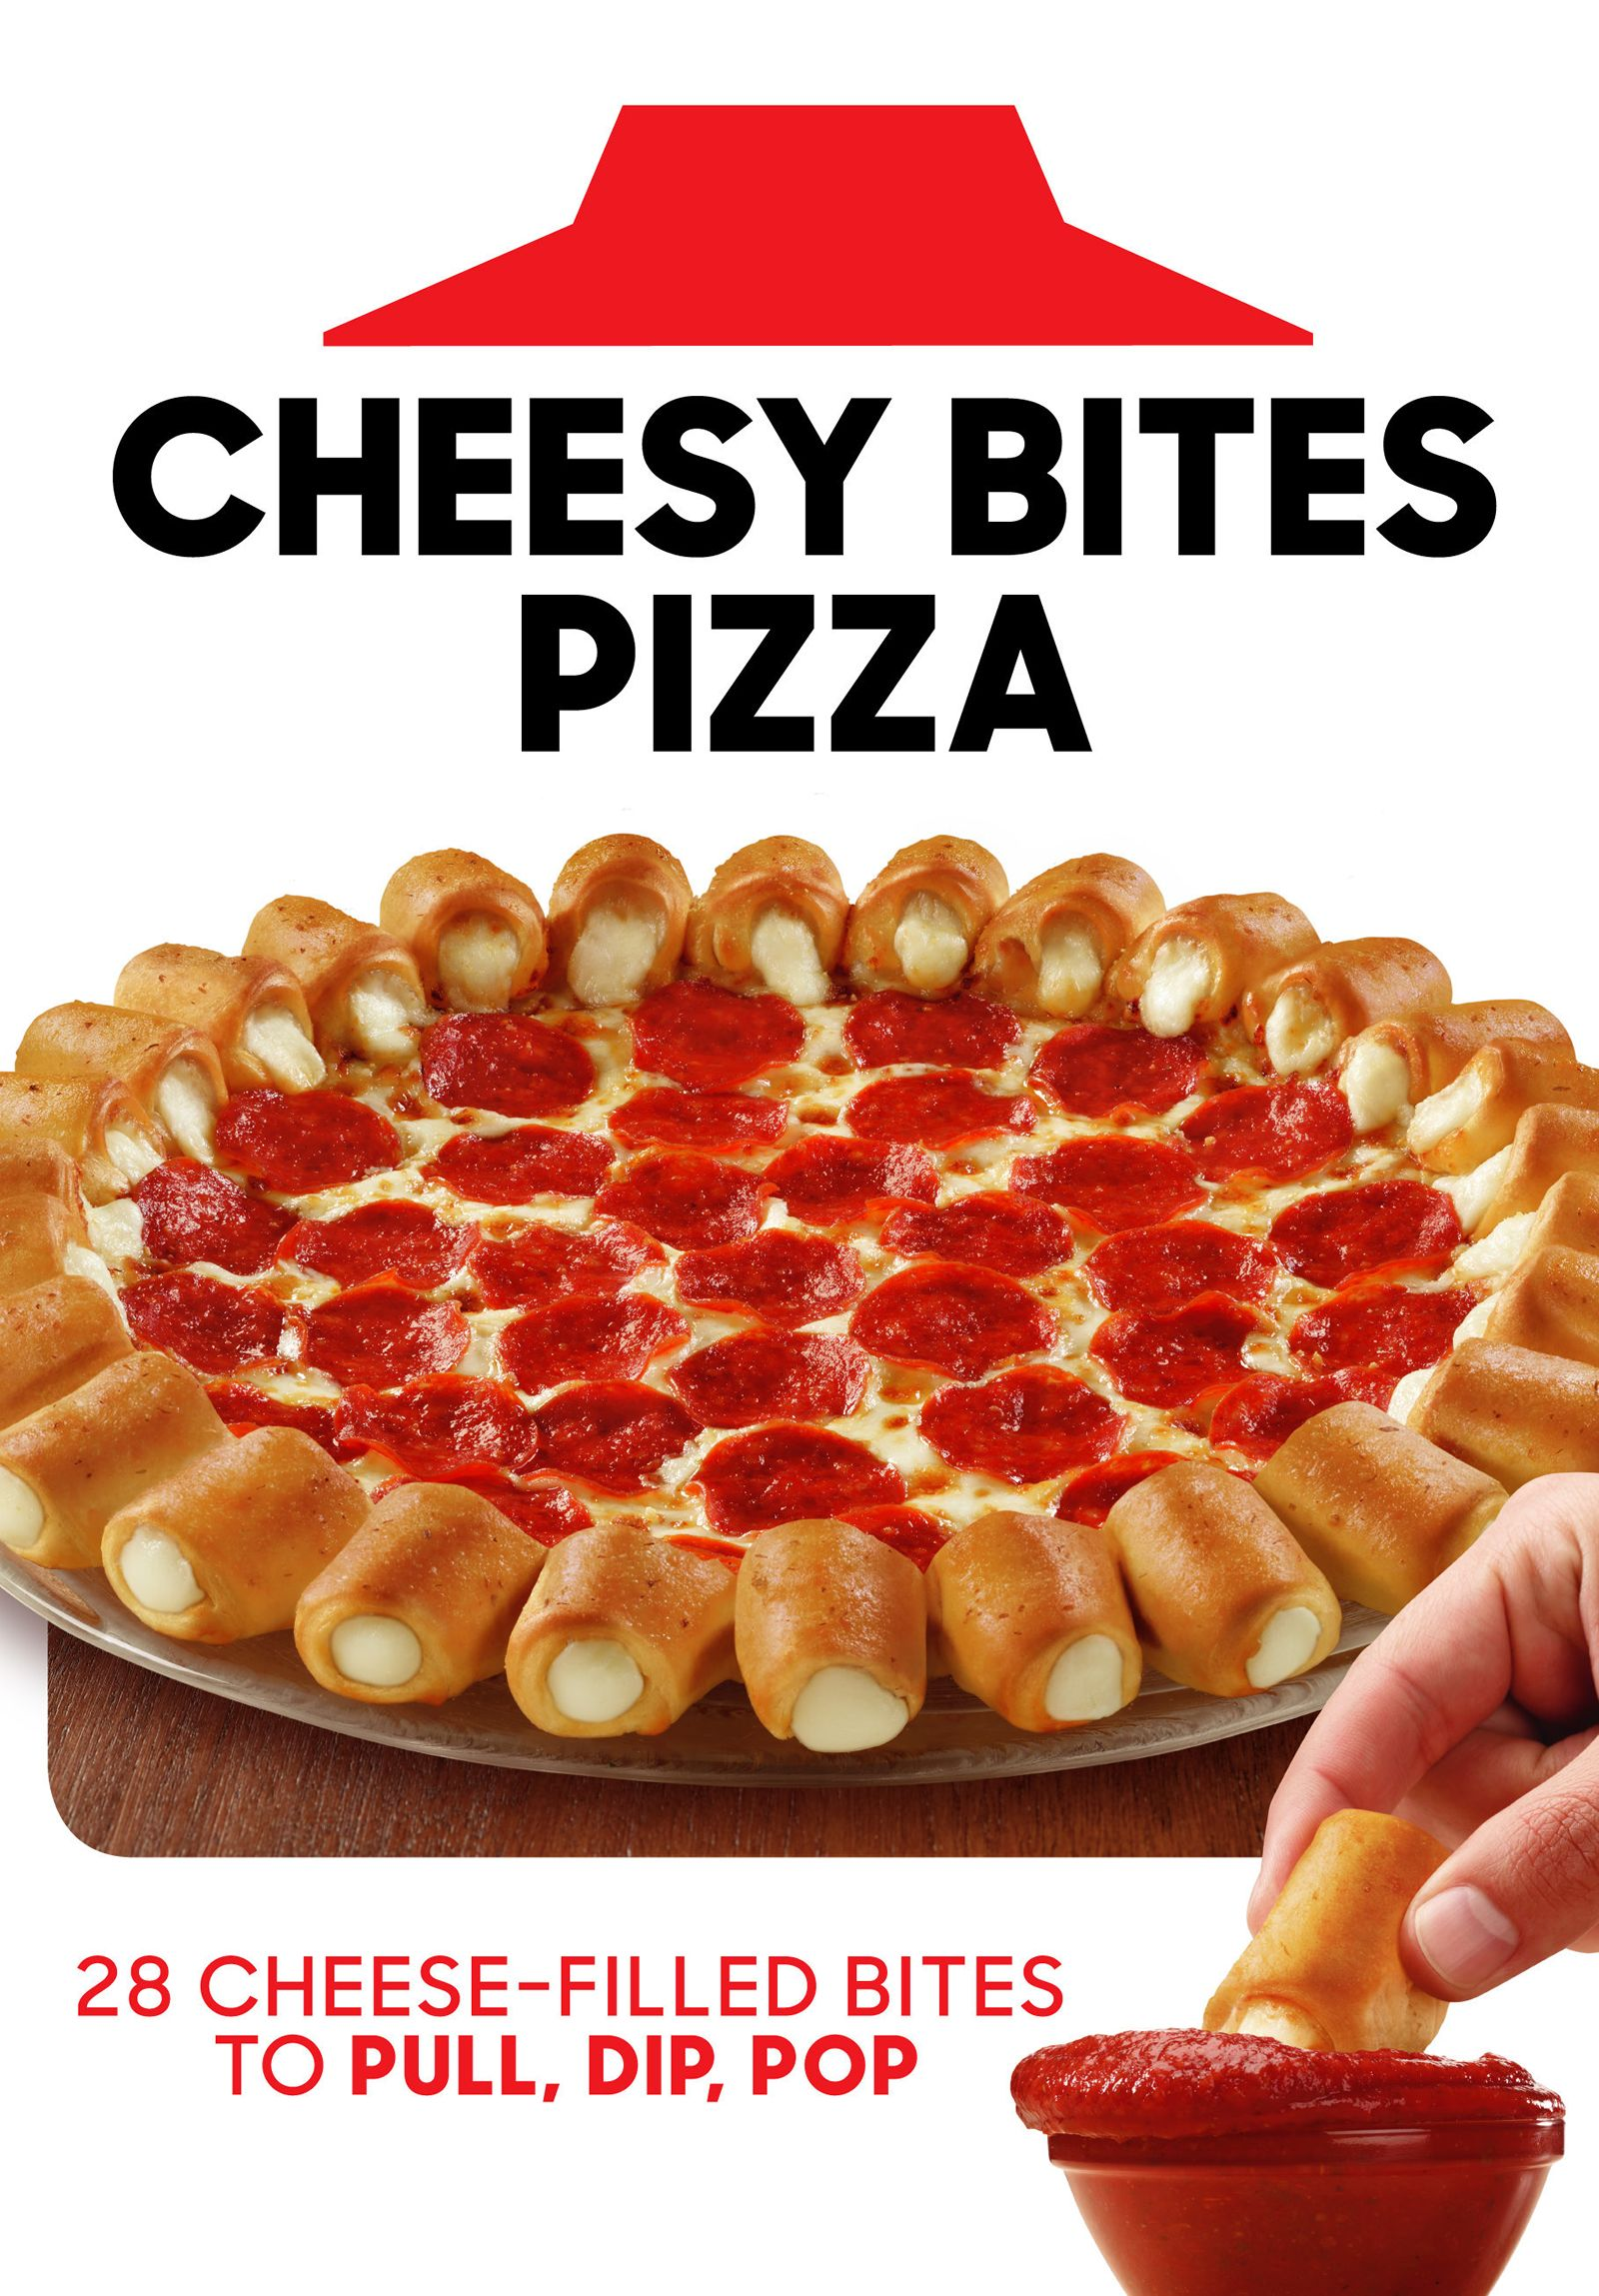 Back By Popular Demand, Cheesy Bites Pizza Pulls, Dips And Pops Its Way Back Onto Pizza Hut Menus For A Limited Time